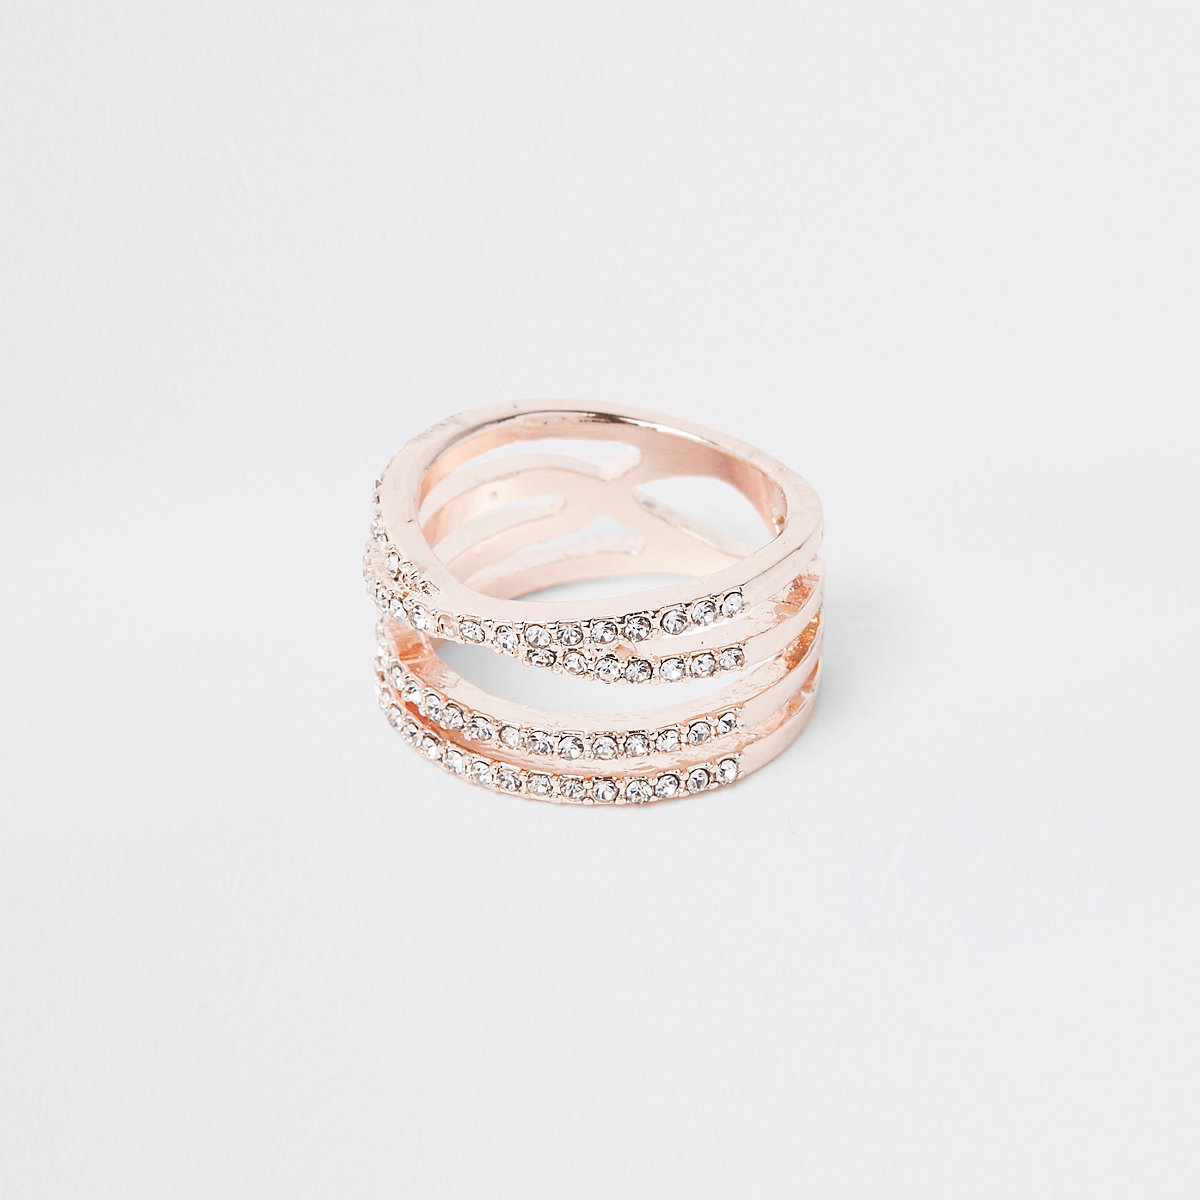 Rose gold color rhinestone double kiss ring